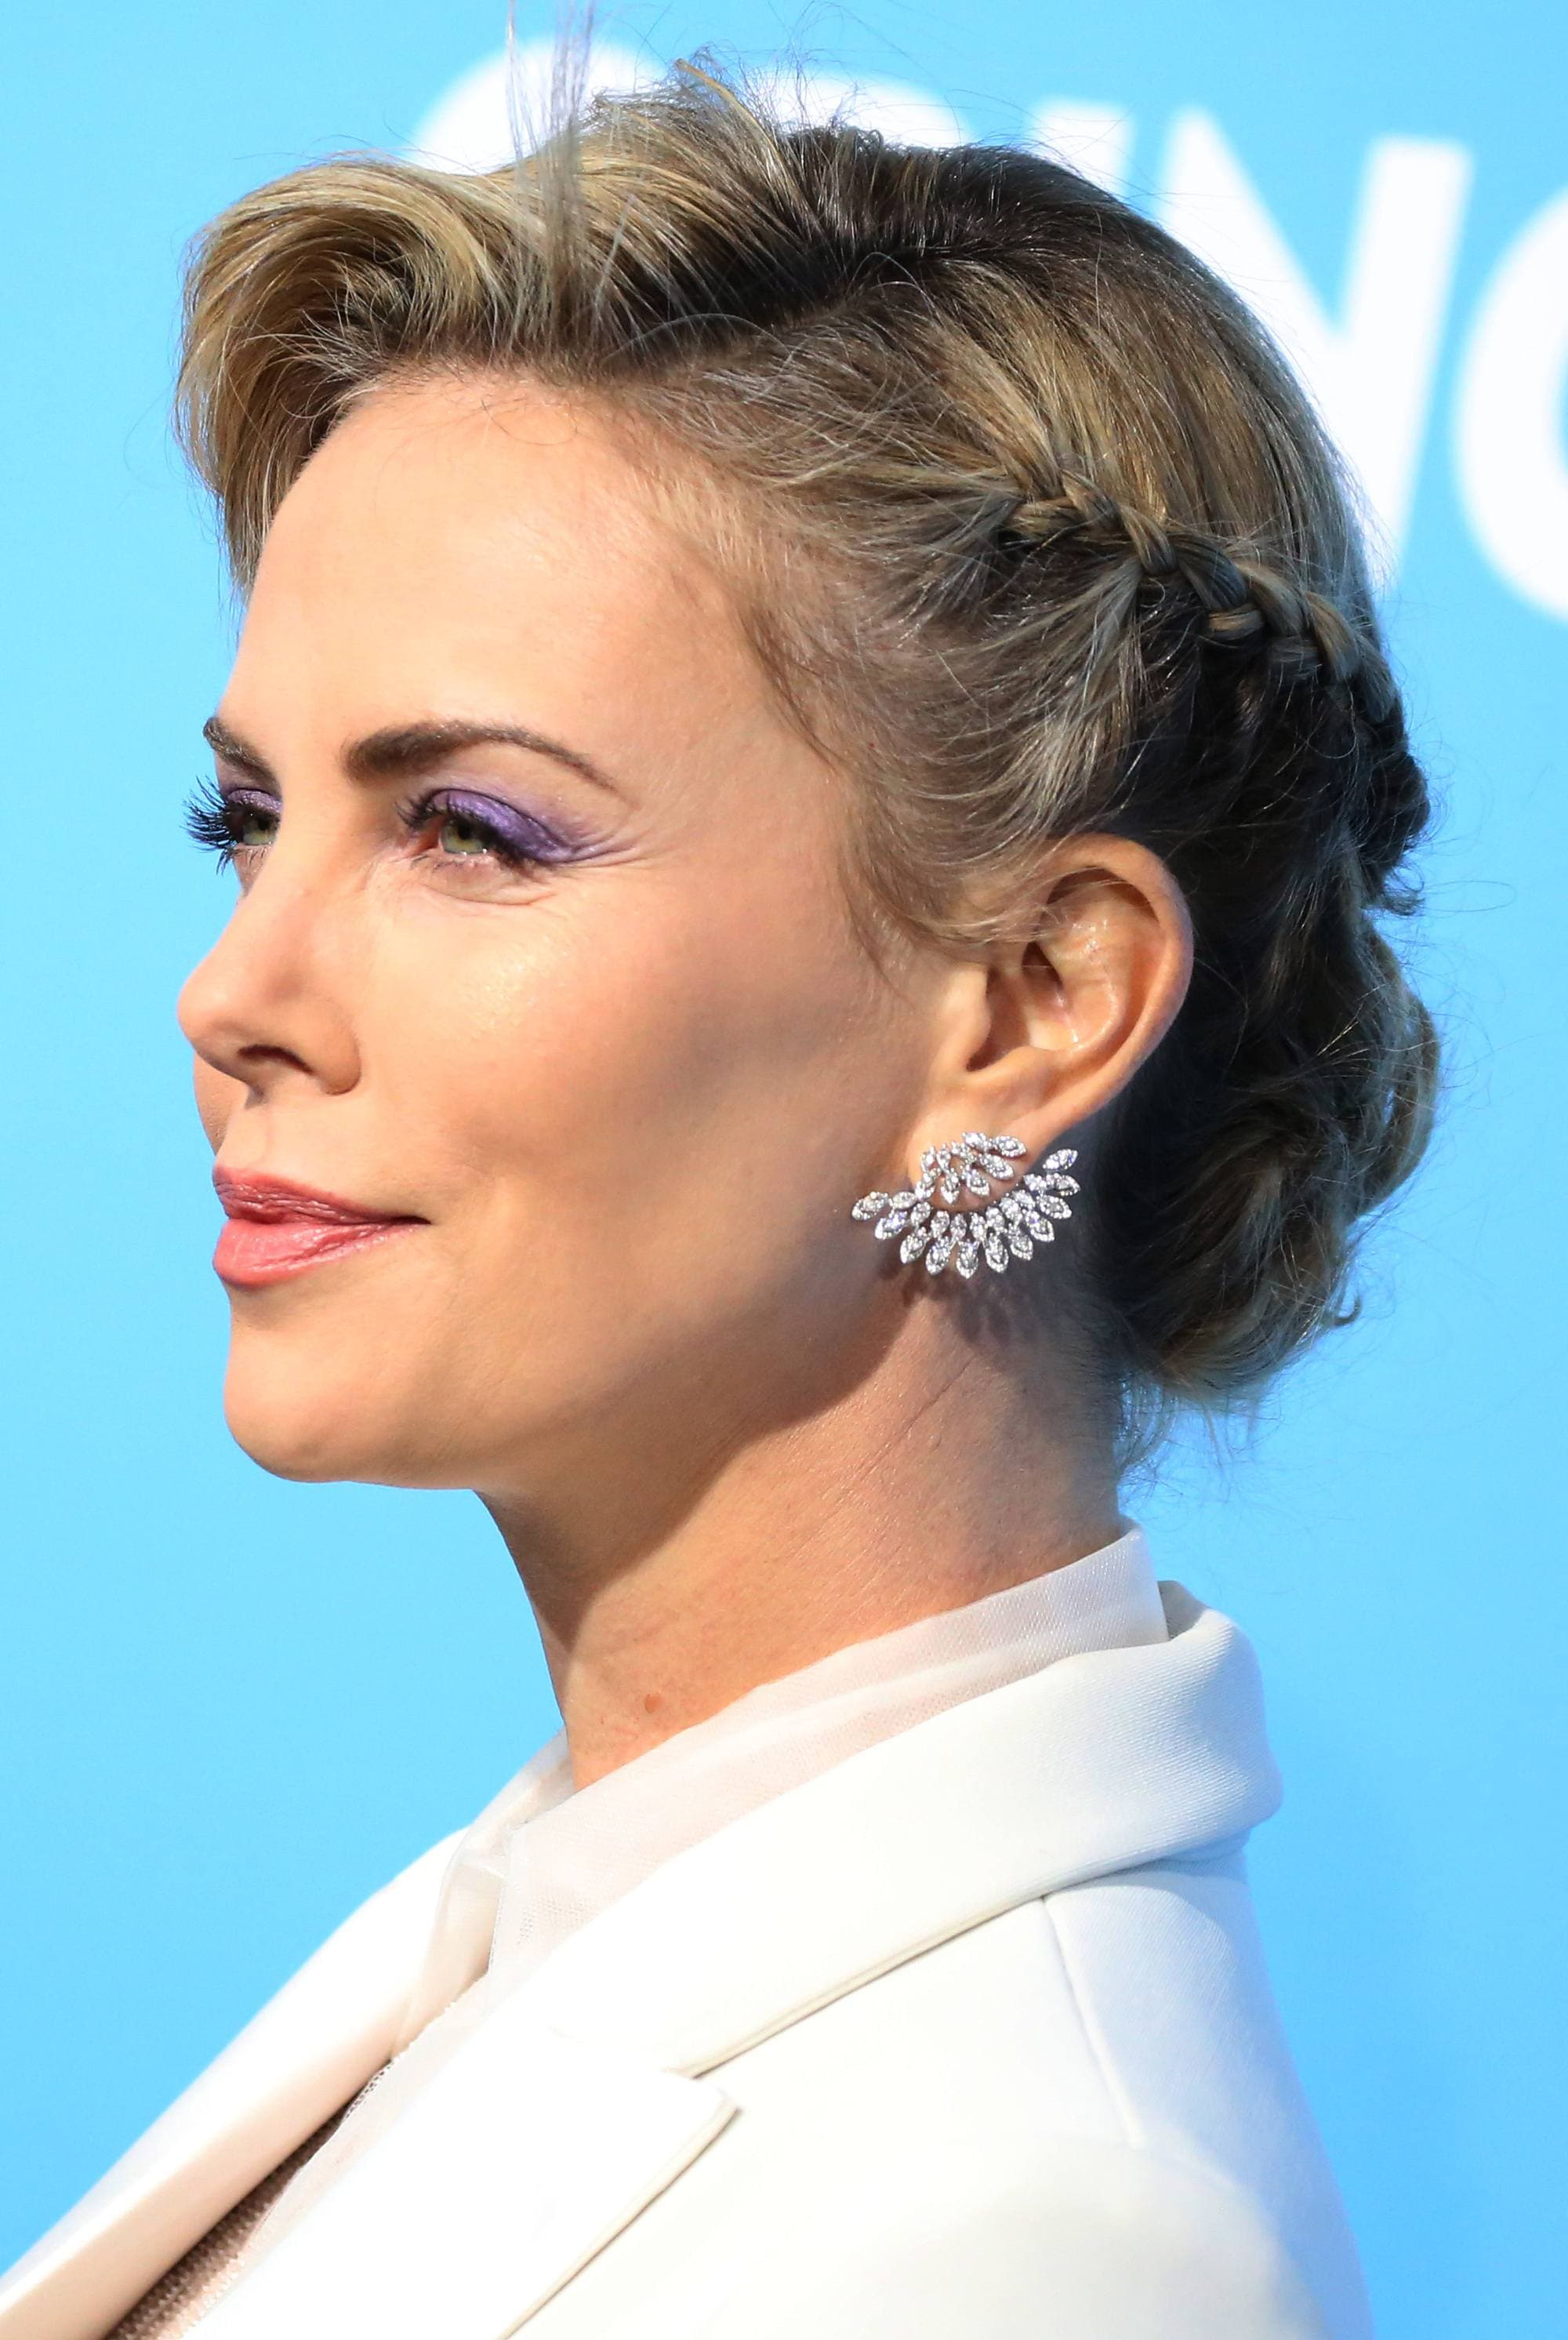 side profile of actress charlize theron on the red carpet with her blonde hair in a low chignon with a side braided detail